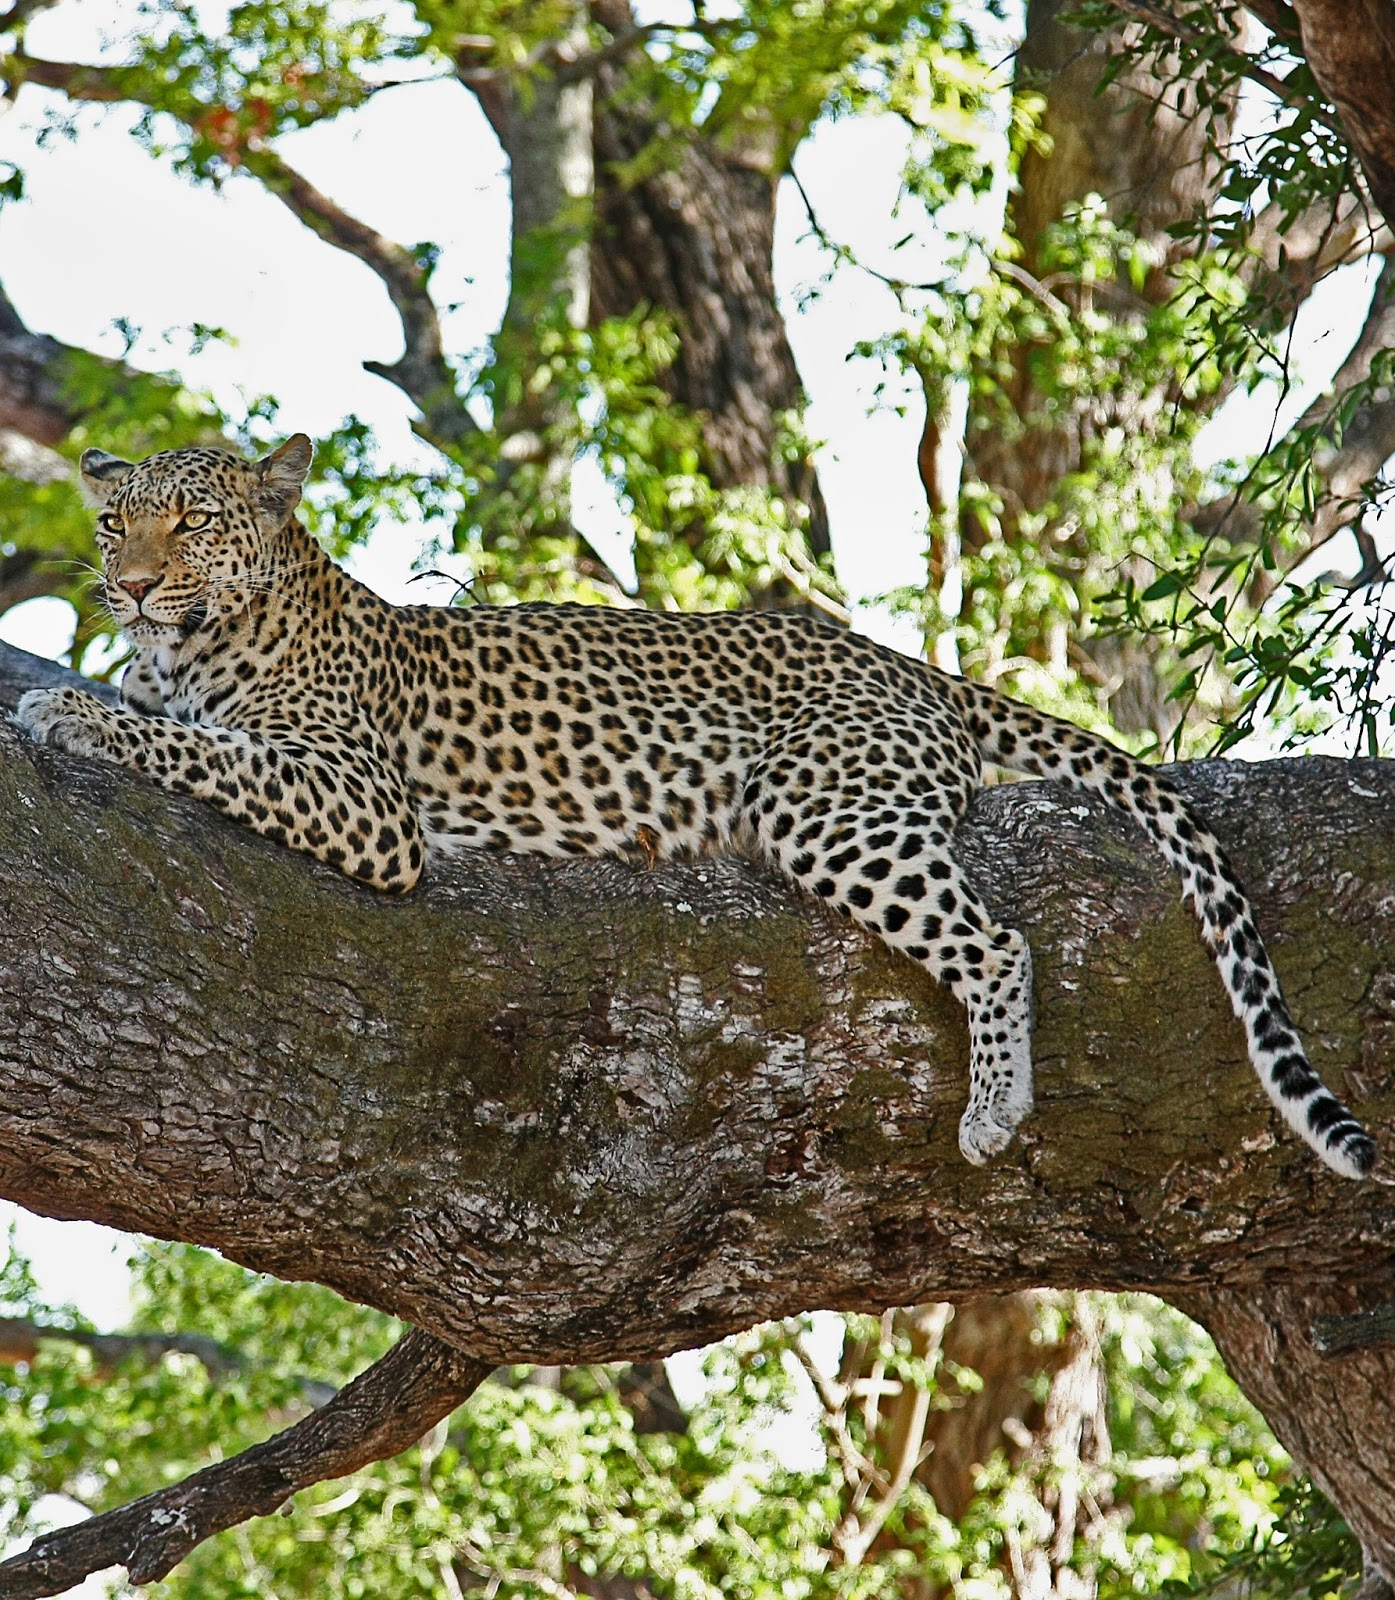 Leopard disguised in a tree.